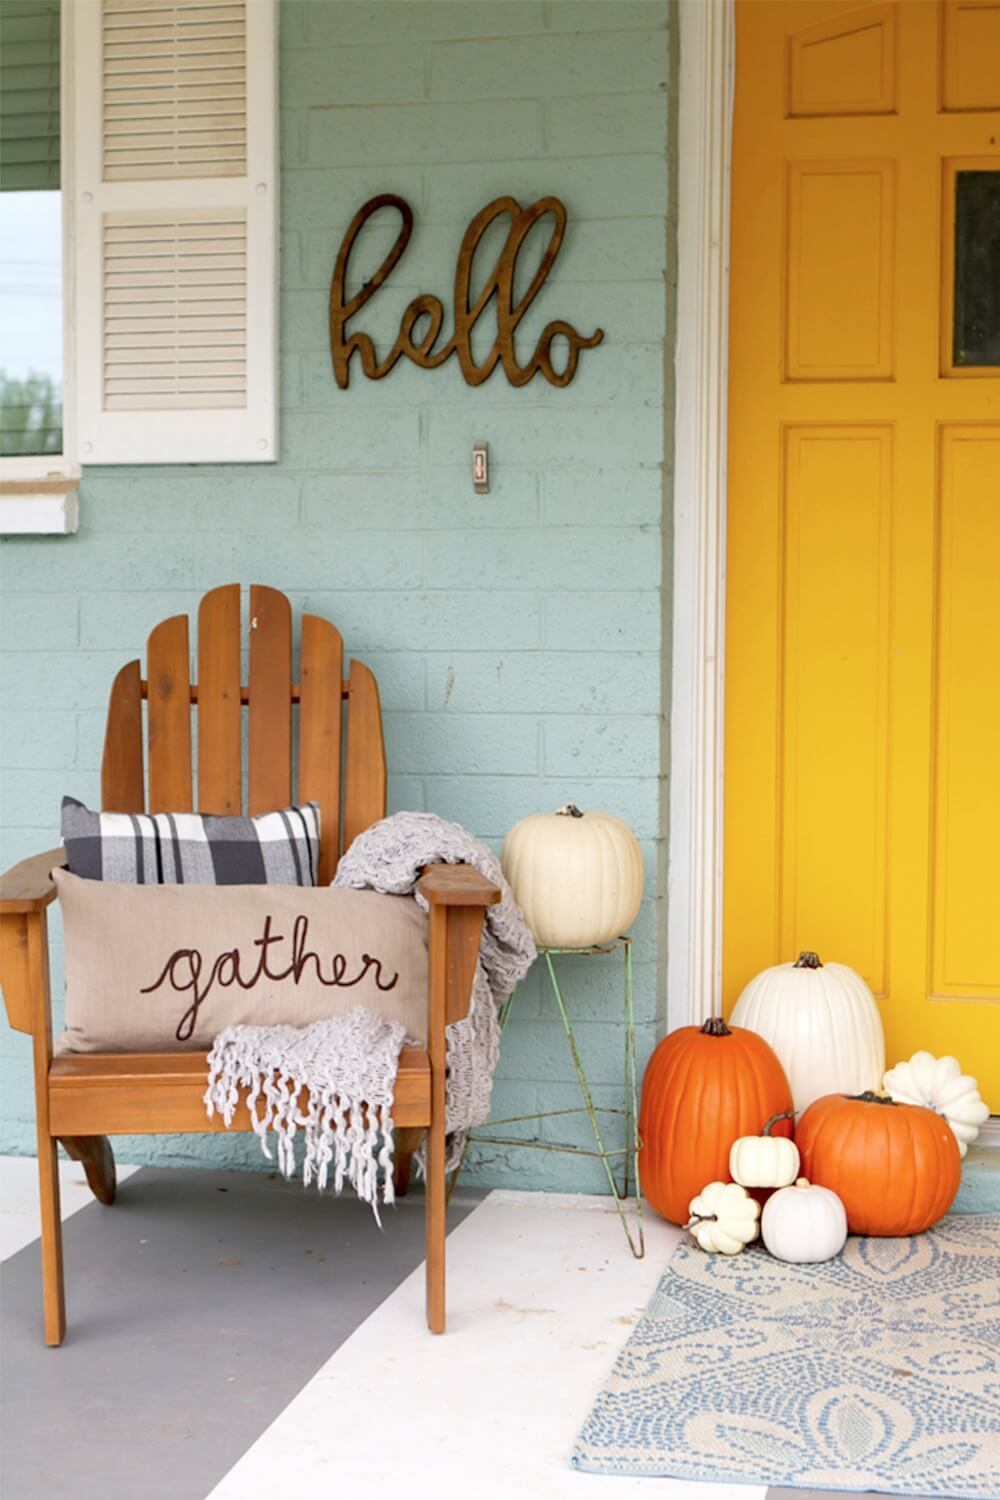 Cute Pumpkin Mini Porch Display